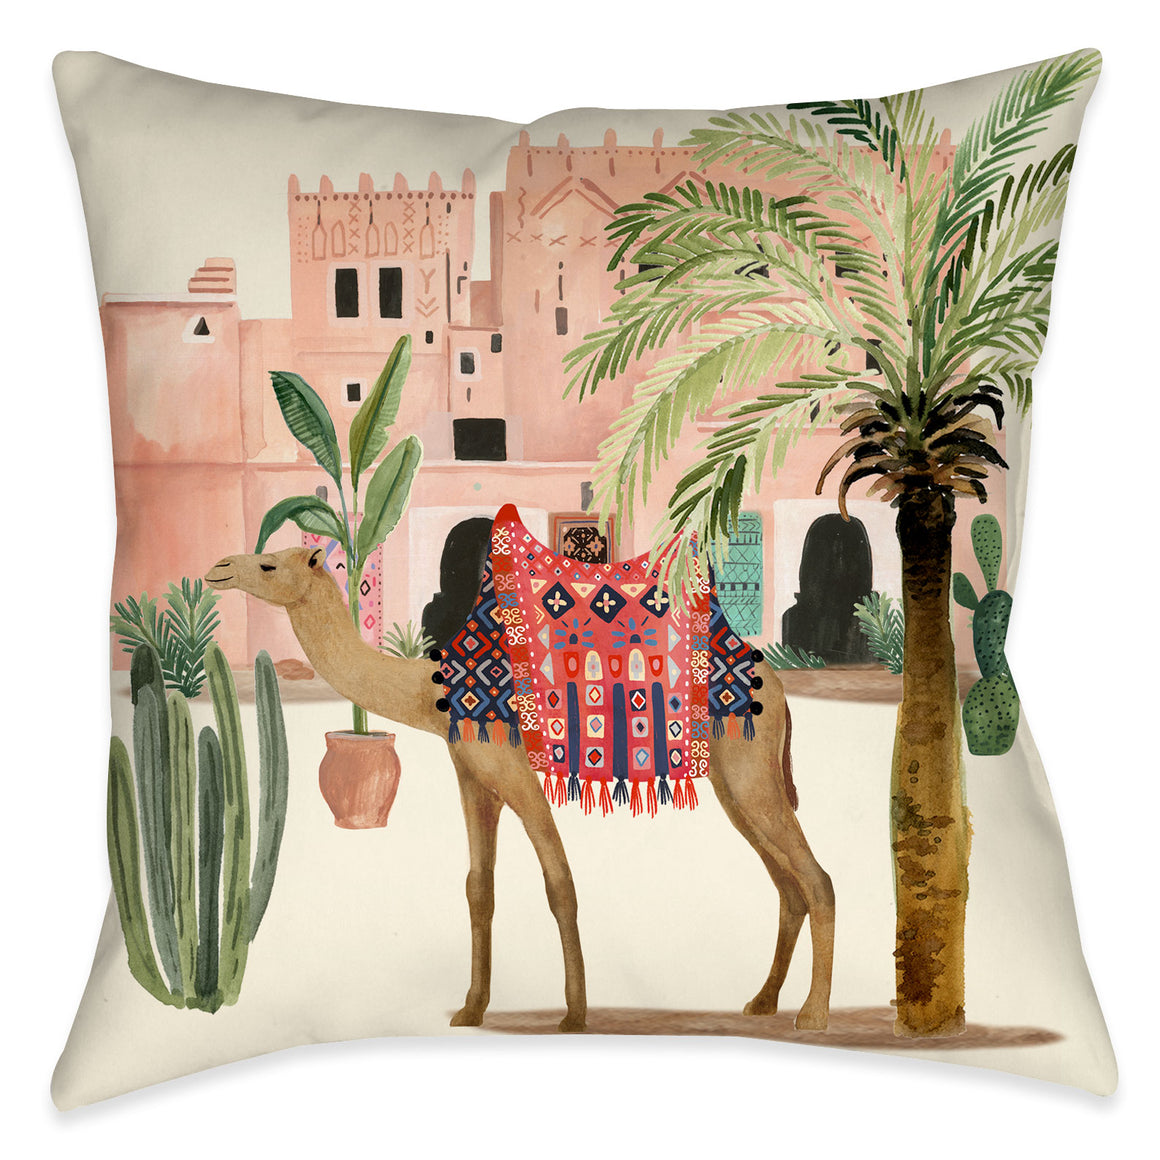 "The ""Marrakesh Dream Indoor Decorative Pillow"" exposes a fun, painterly design of trendy pattern dressed camel, desert plants and adobe huts. Bring the scenery of Marrakesh to your home decor with this bohemian must-have."